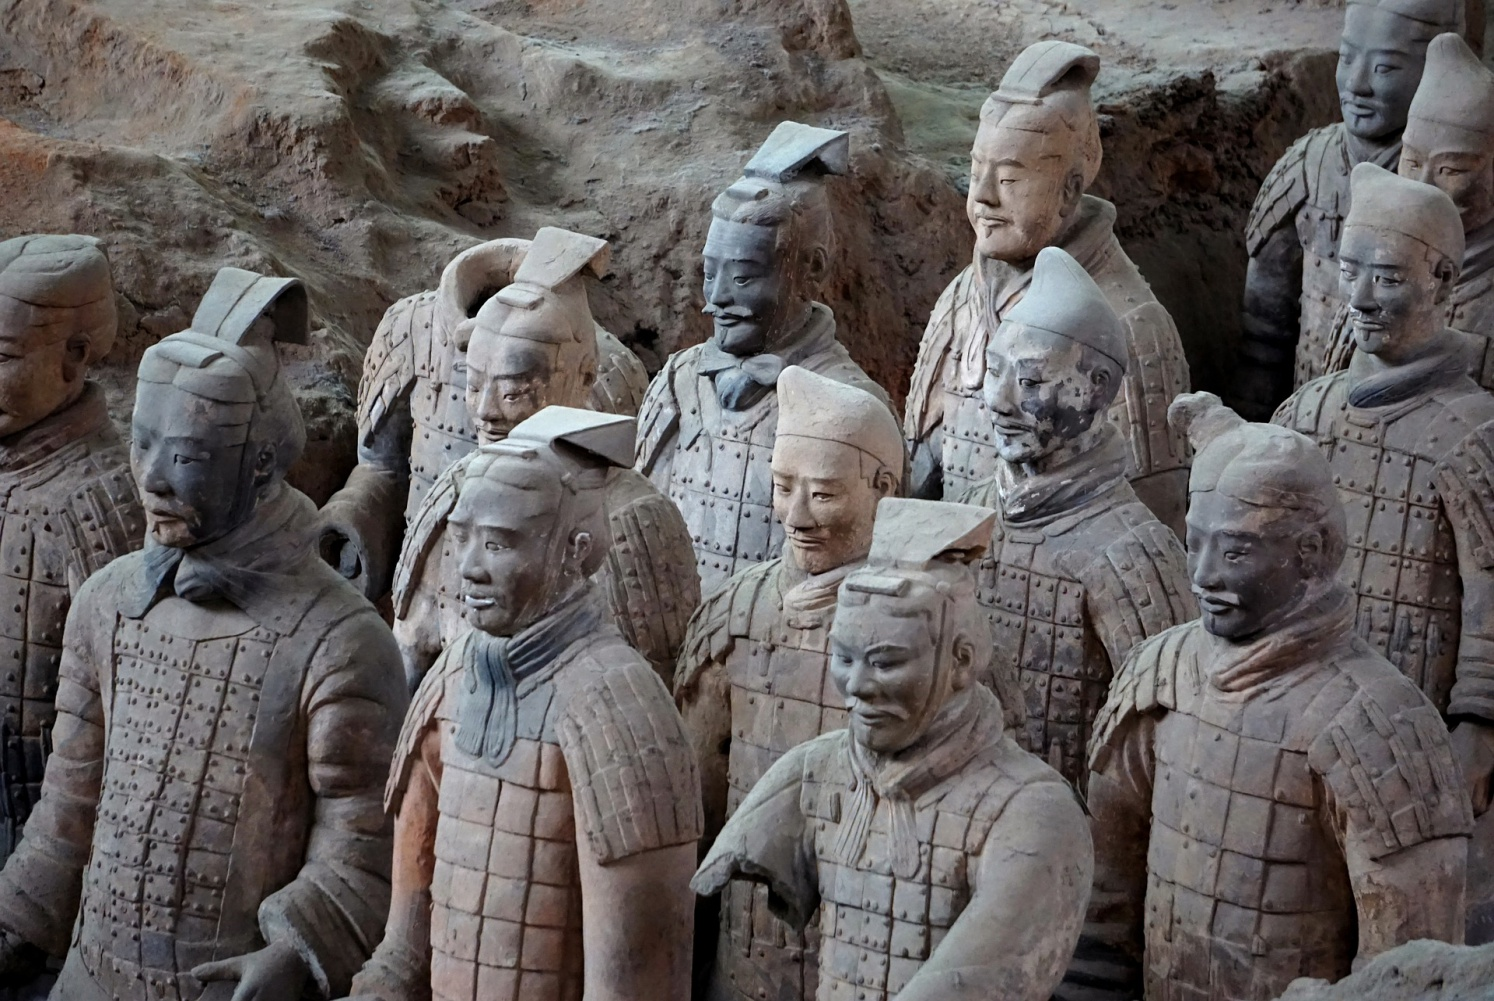 Day 6: Terracotta Warriors - Often cited as one of the world's most significant archaeological discoveries, the Qin Terracotta Warriors, arranged in battle formation around the giant mausoleum, are a powerful, evocative and hard-to-believe necessity on your China tour.